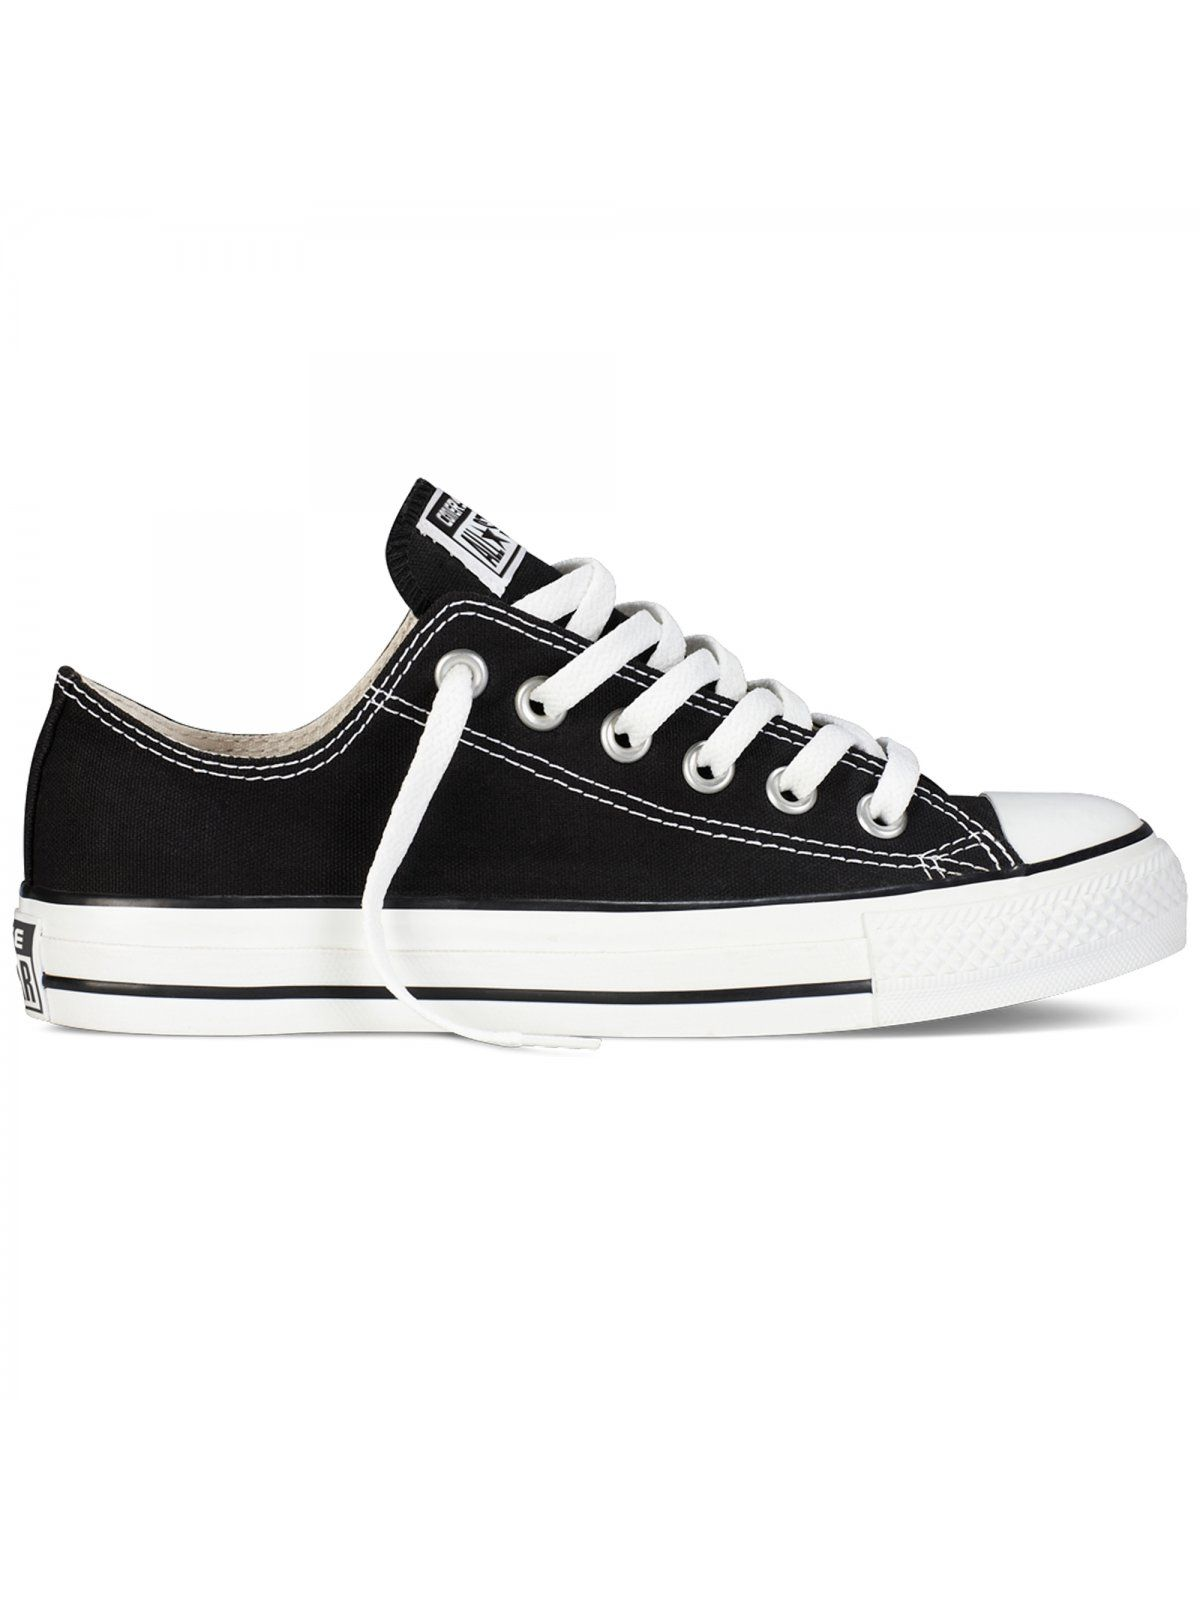 Converse All Star Unisex Chuck Taylor Low Top - Black/White